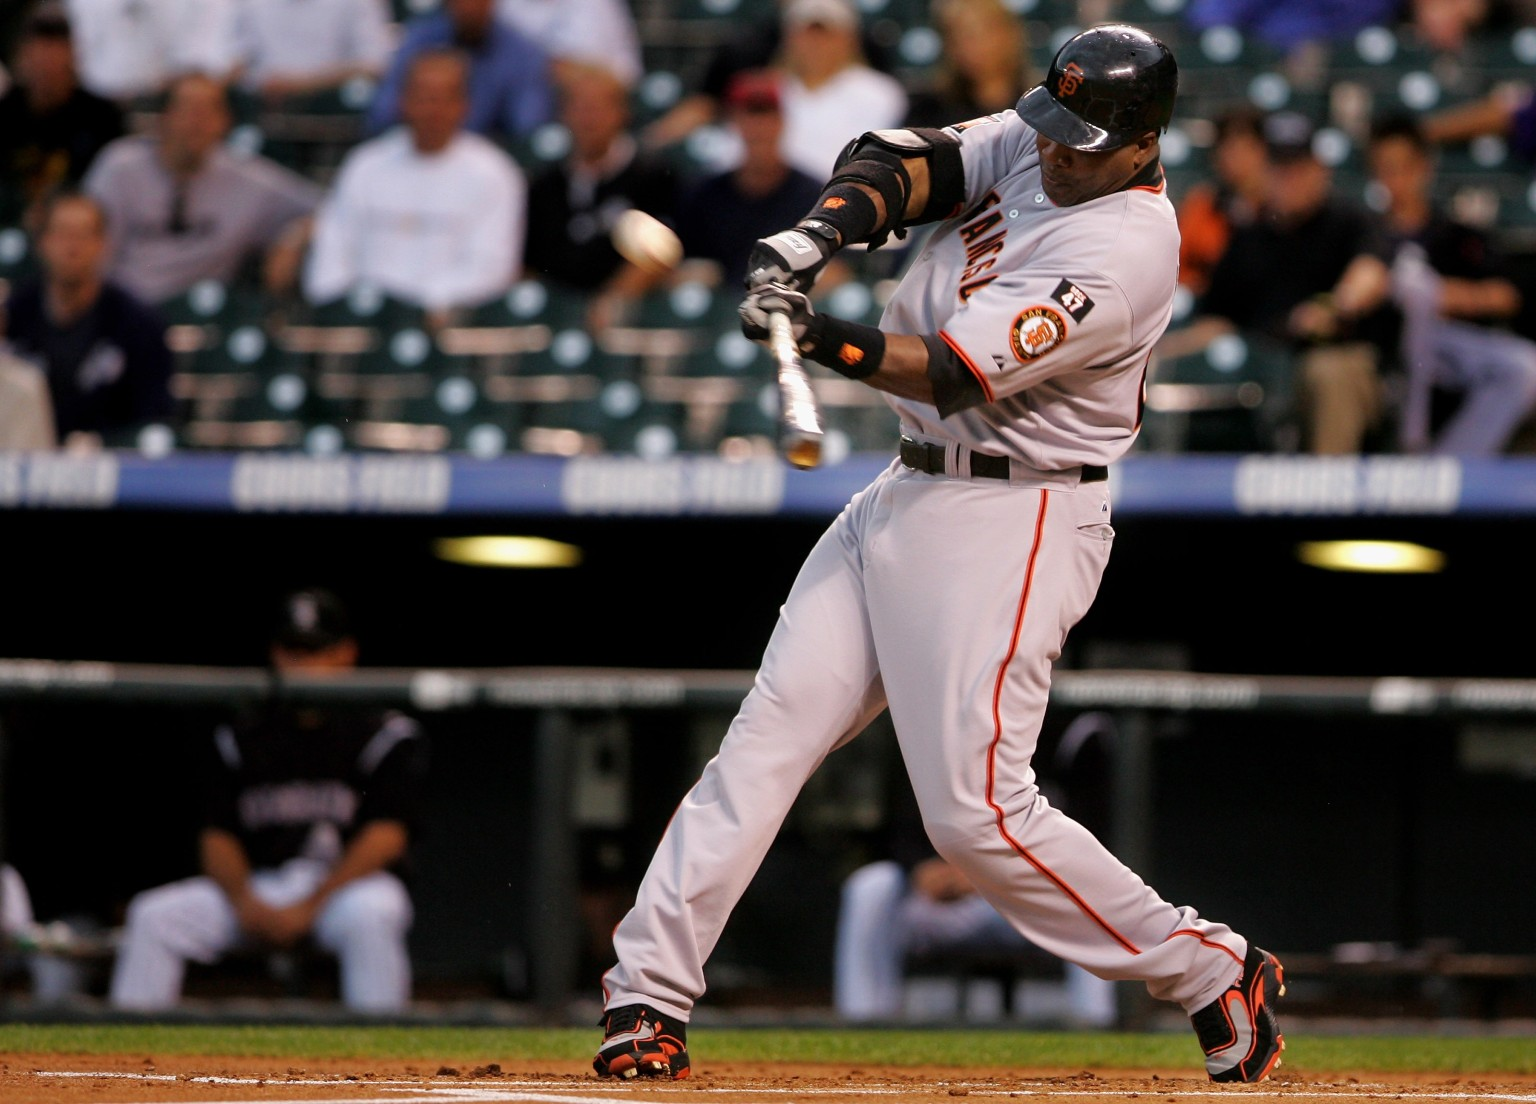 steroids and barry bonds A prominent player from baseball's steroid era got into the 2016 hof class see who this player was and why he got in over other steroids users.